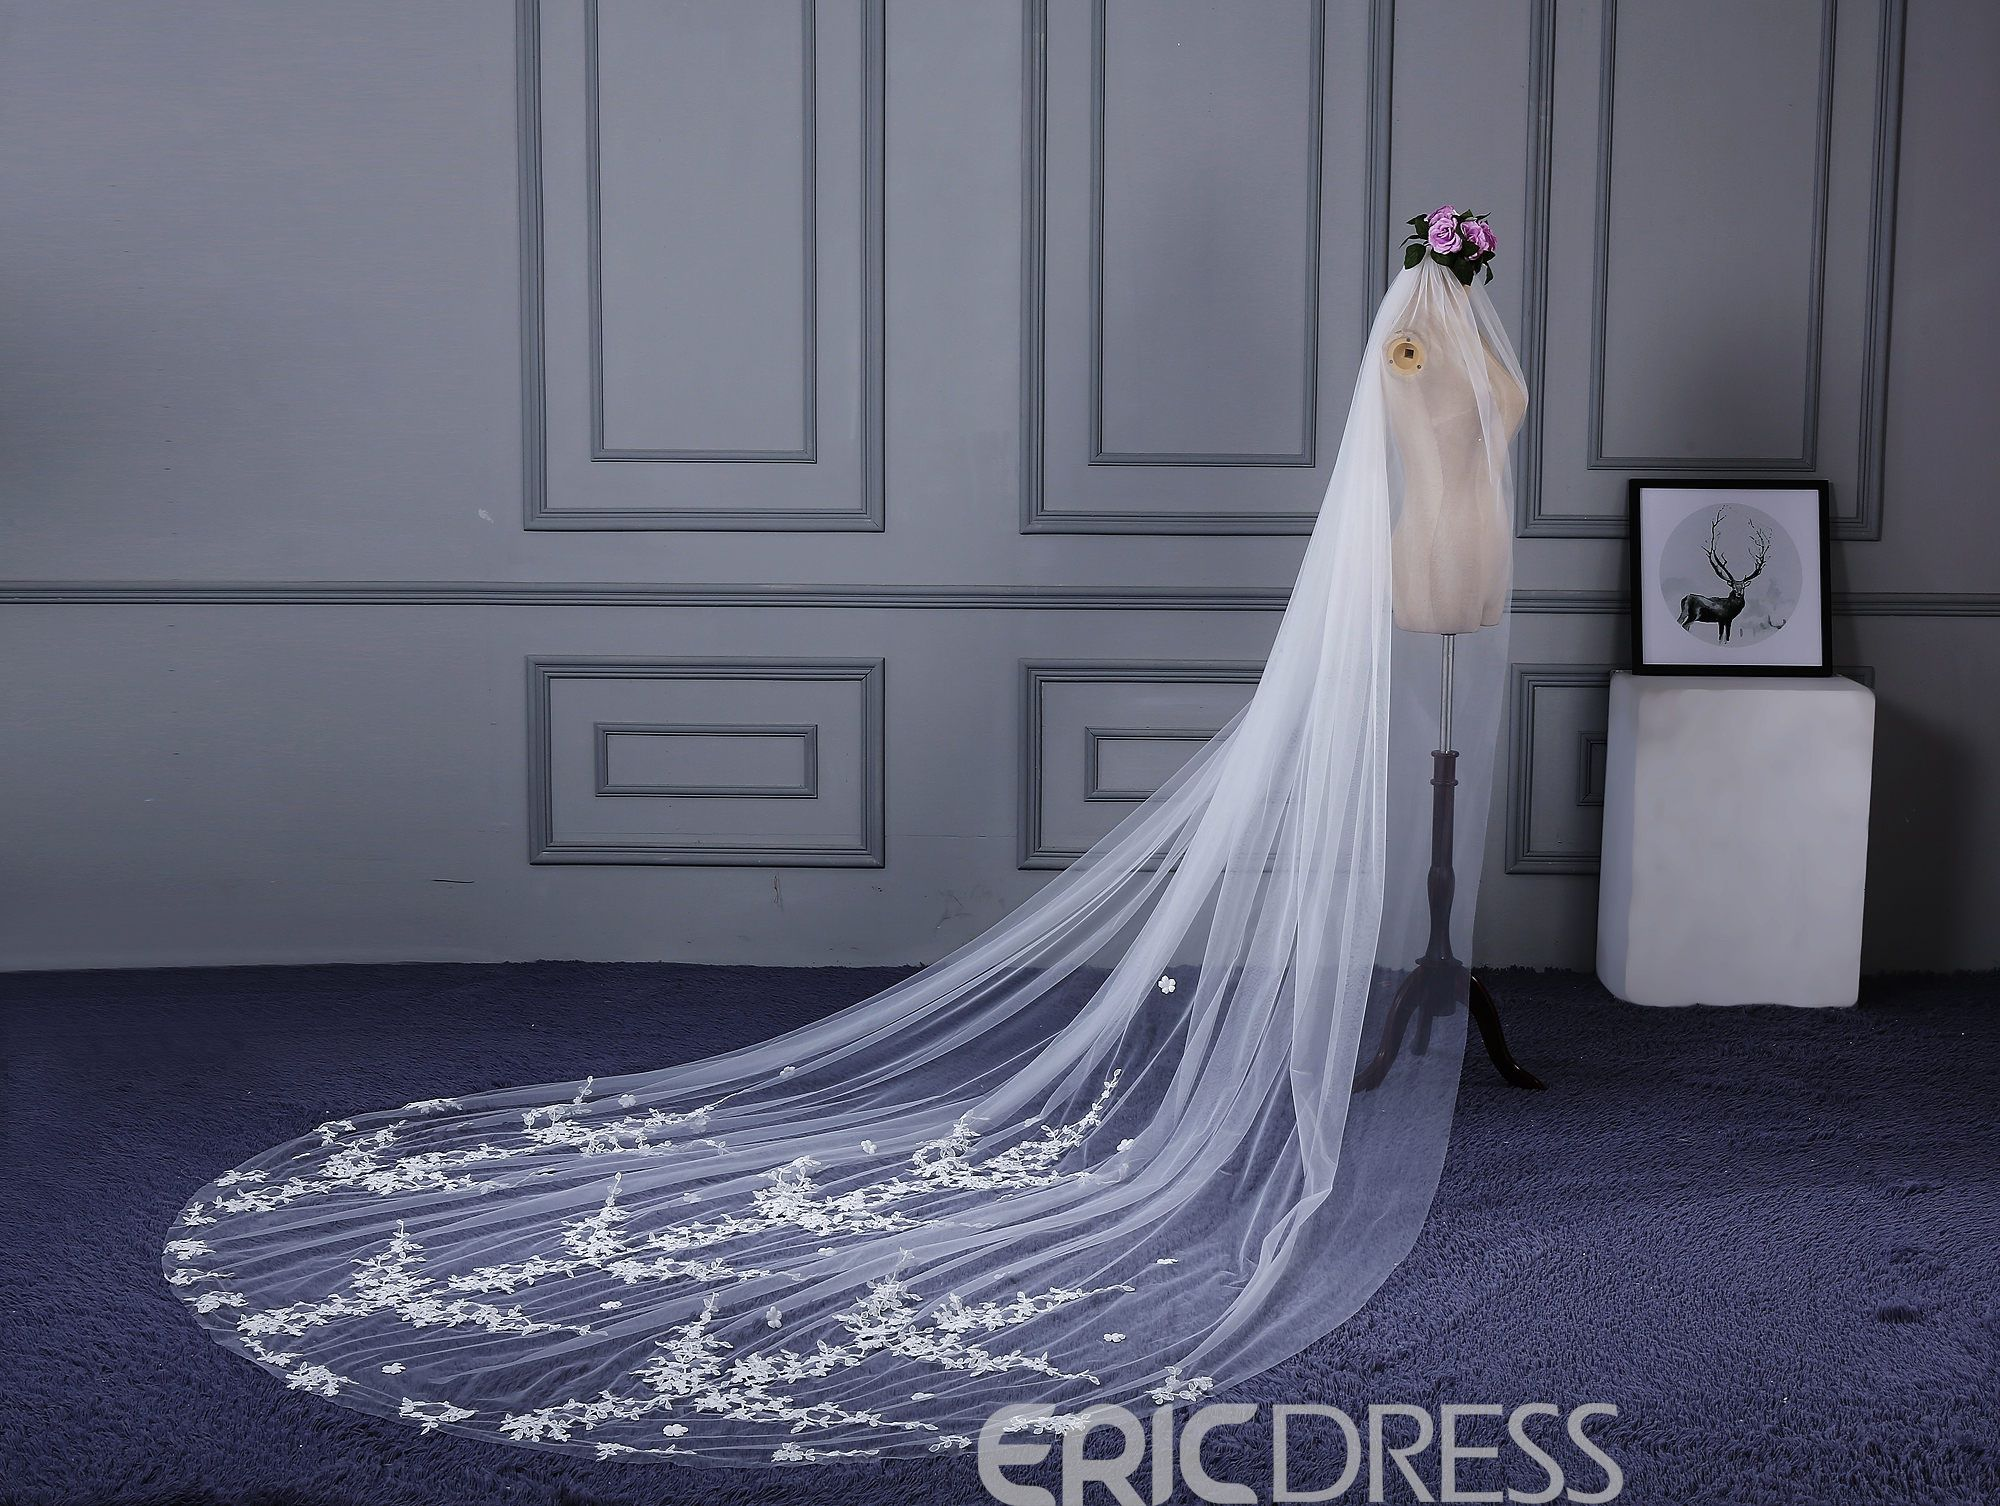 Ericdress Concise Appliques Cathedral Wedding Dress